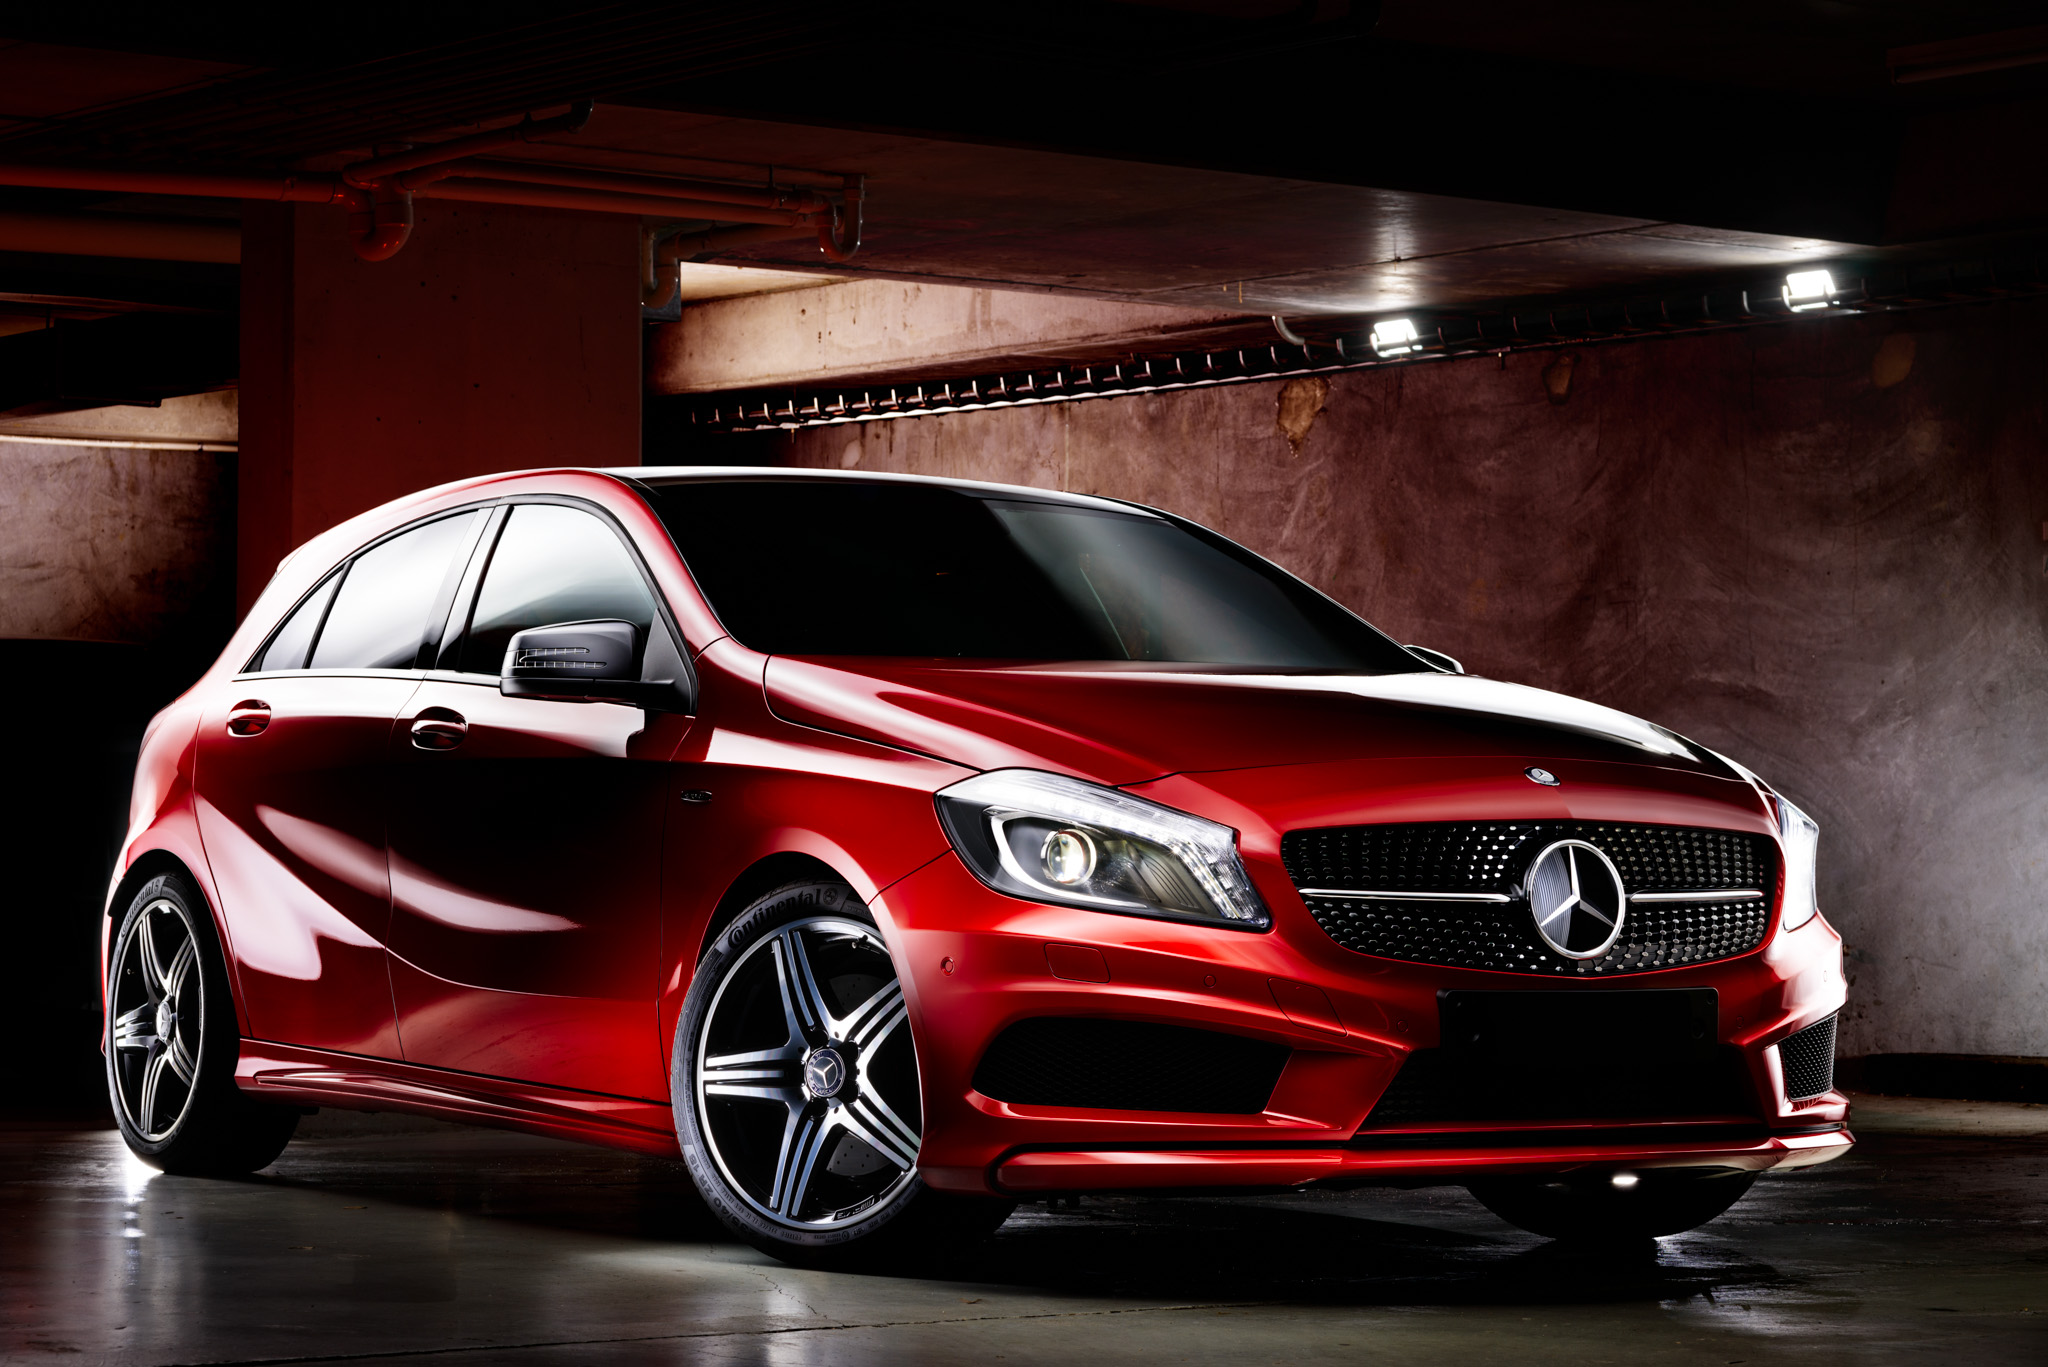 Light Painting - Mercedes A250 red